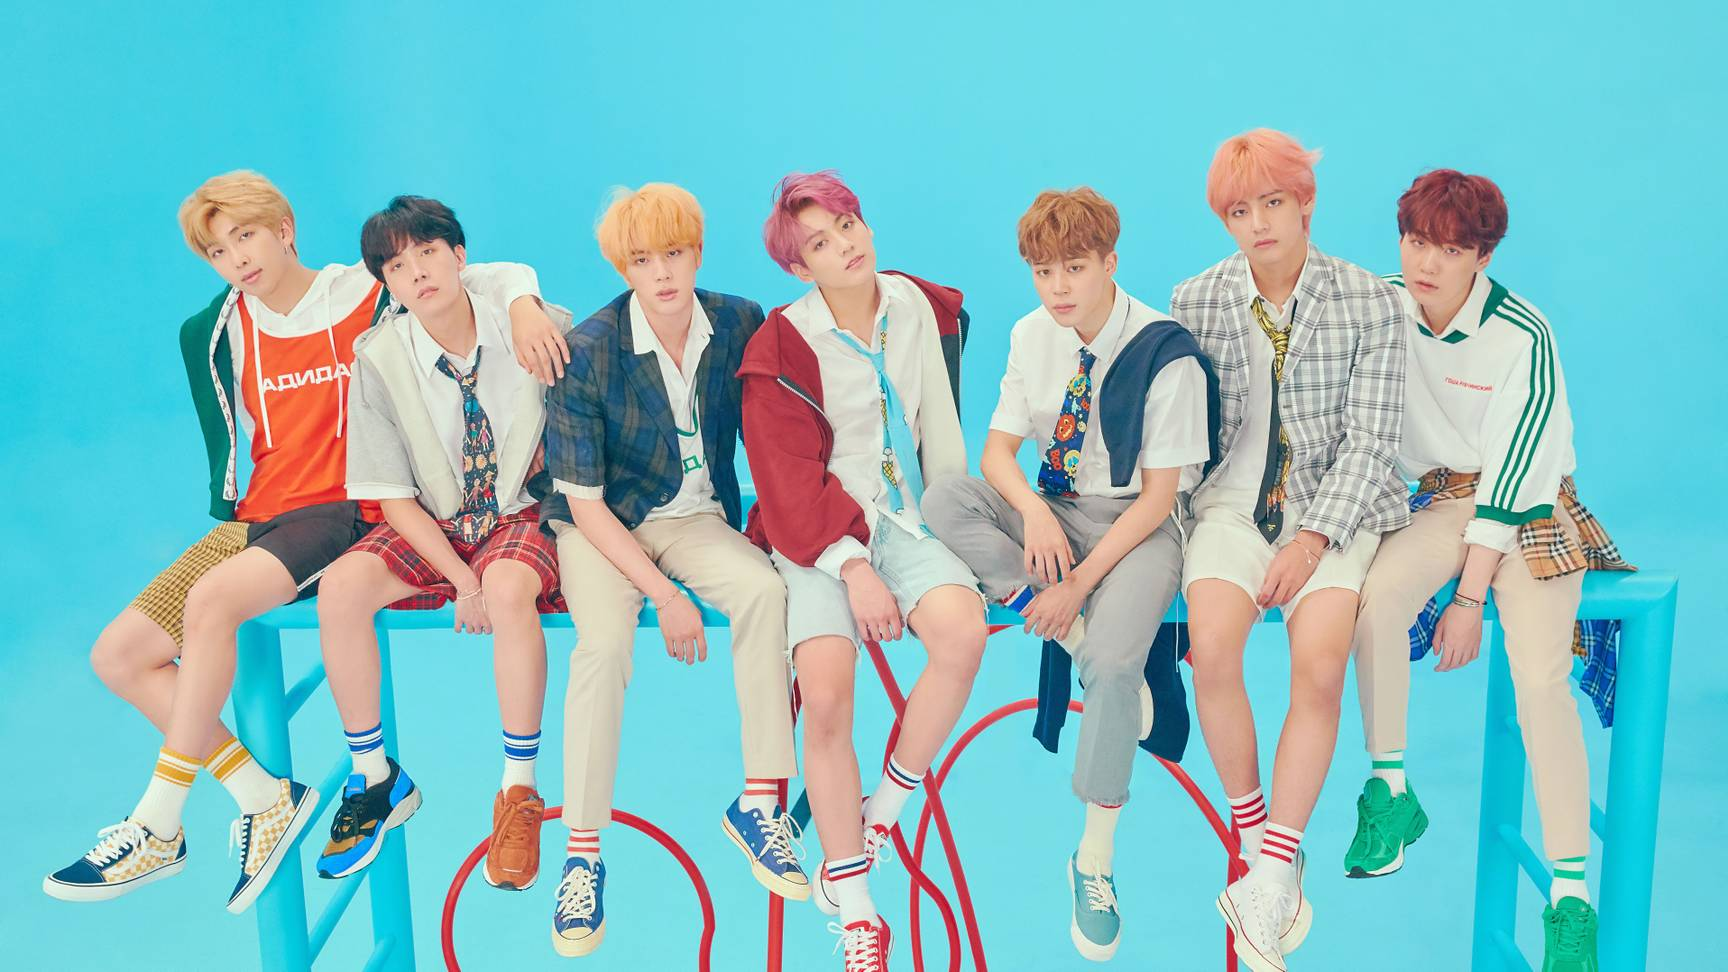 ✨ @BTS_twt on why their music speaks to young people around the world: https://t.co/UZOi1f9jz8 https://t.co/idC7NwQpSb